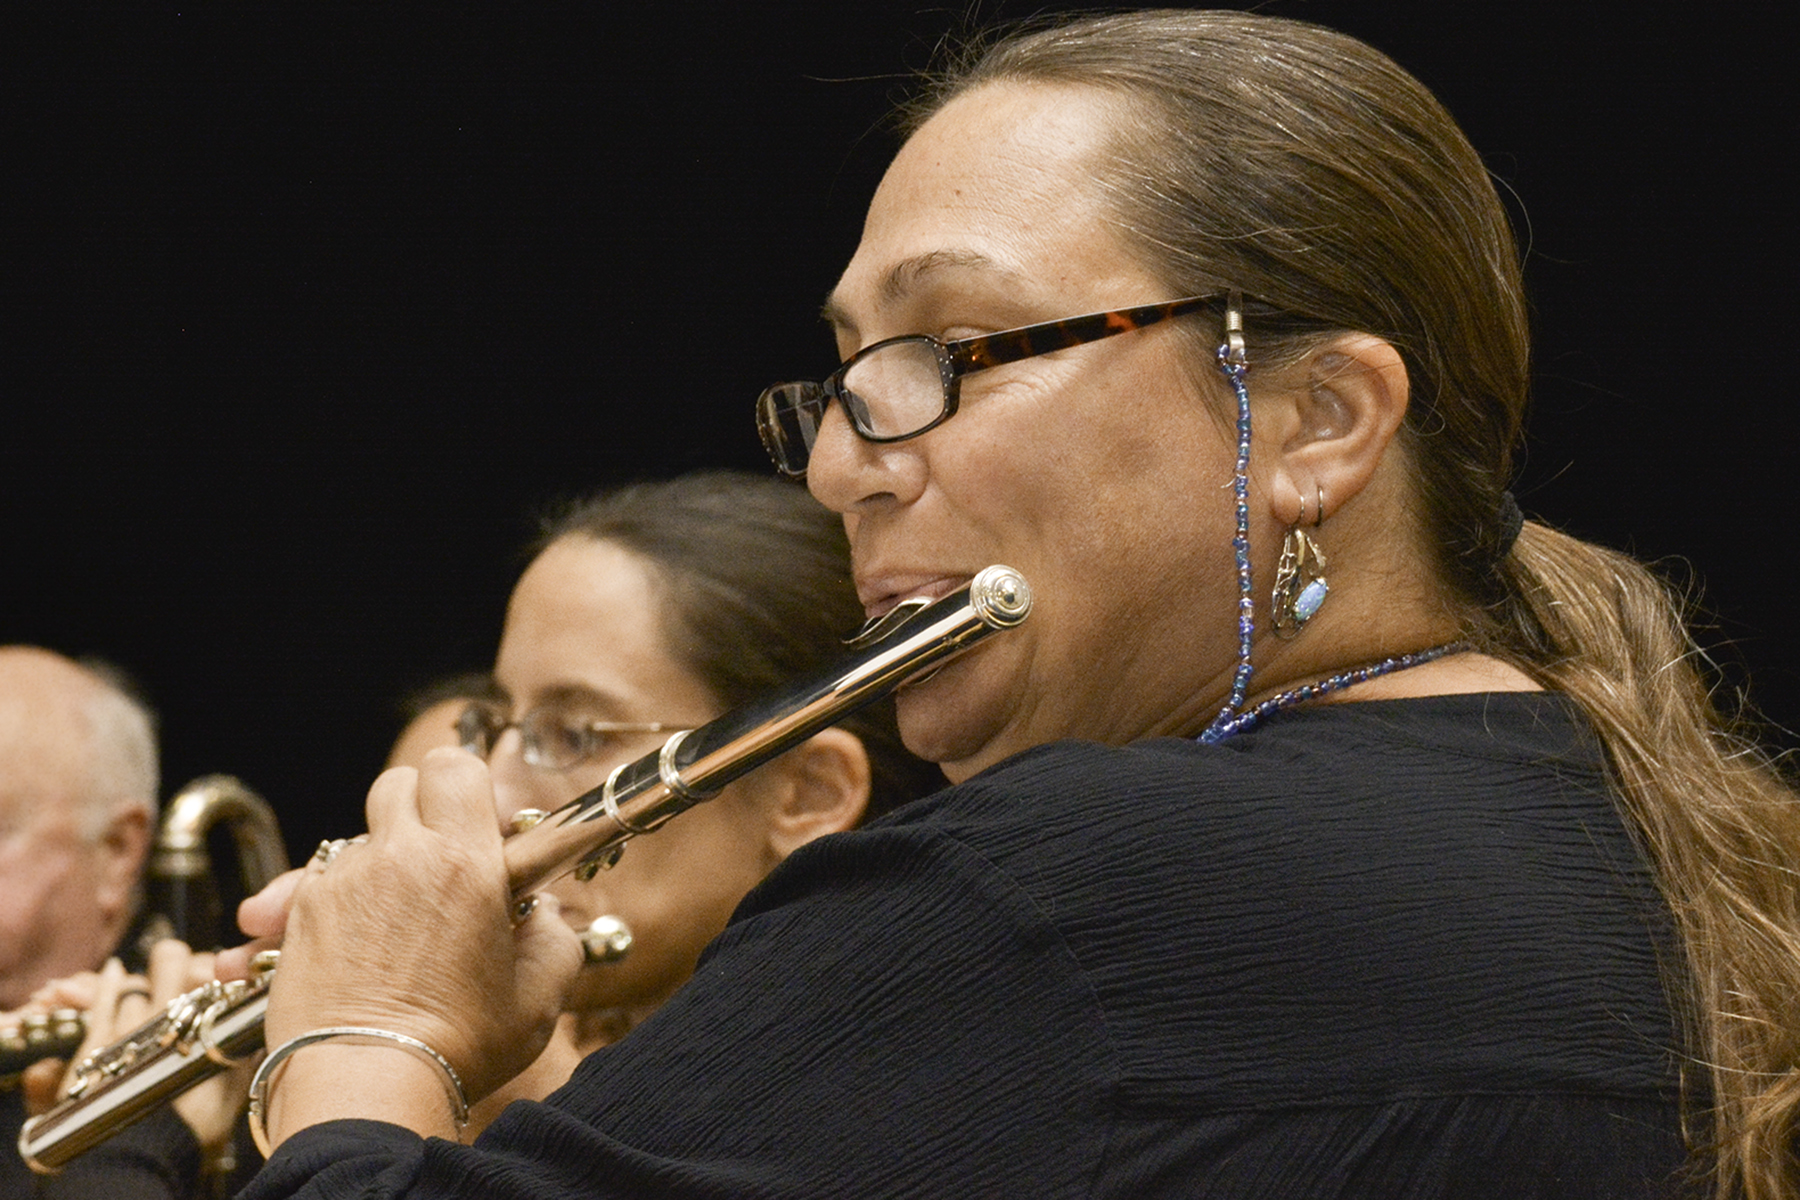 The St. Augustine Concert Band attracts many talented musicians.